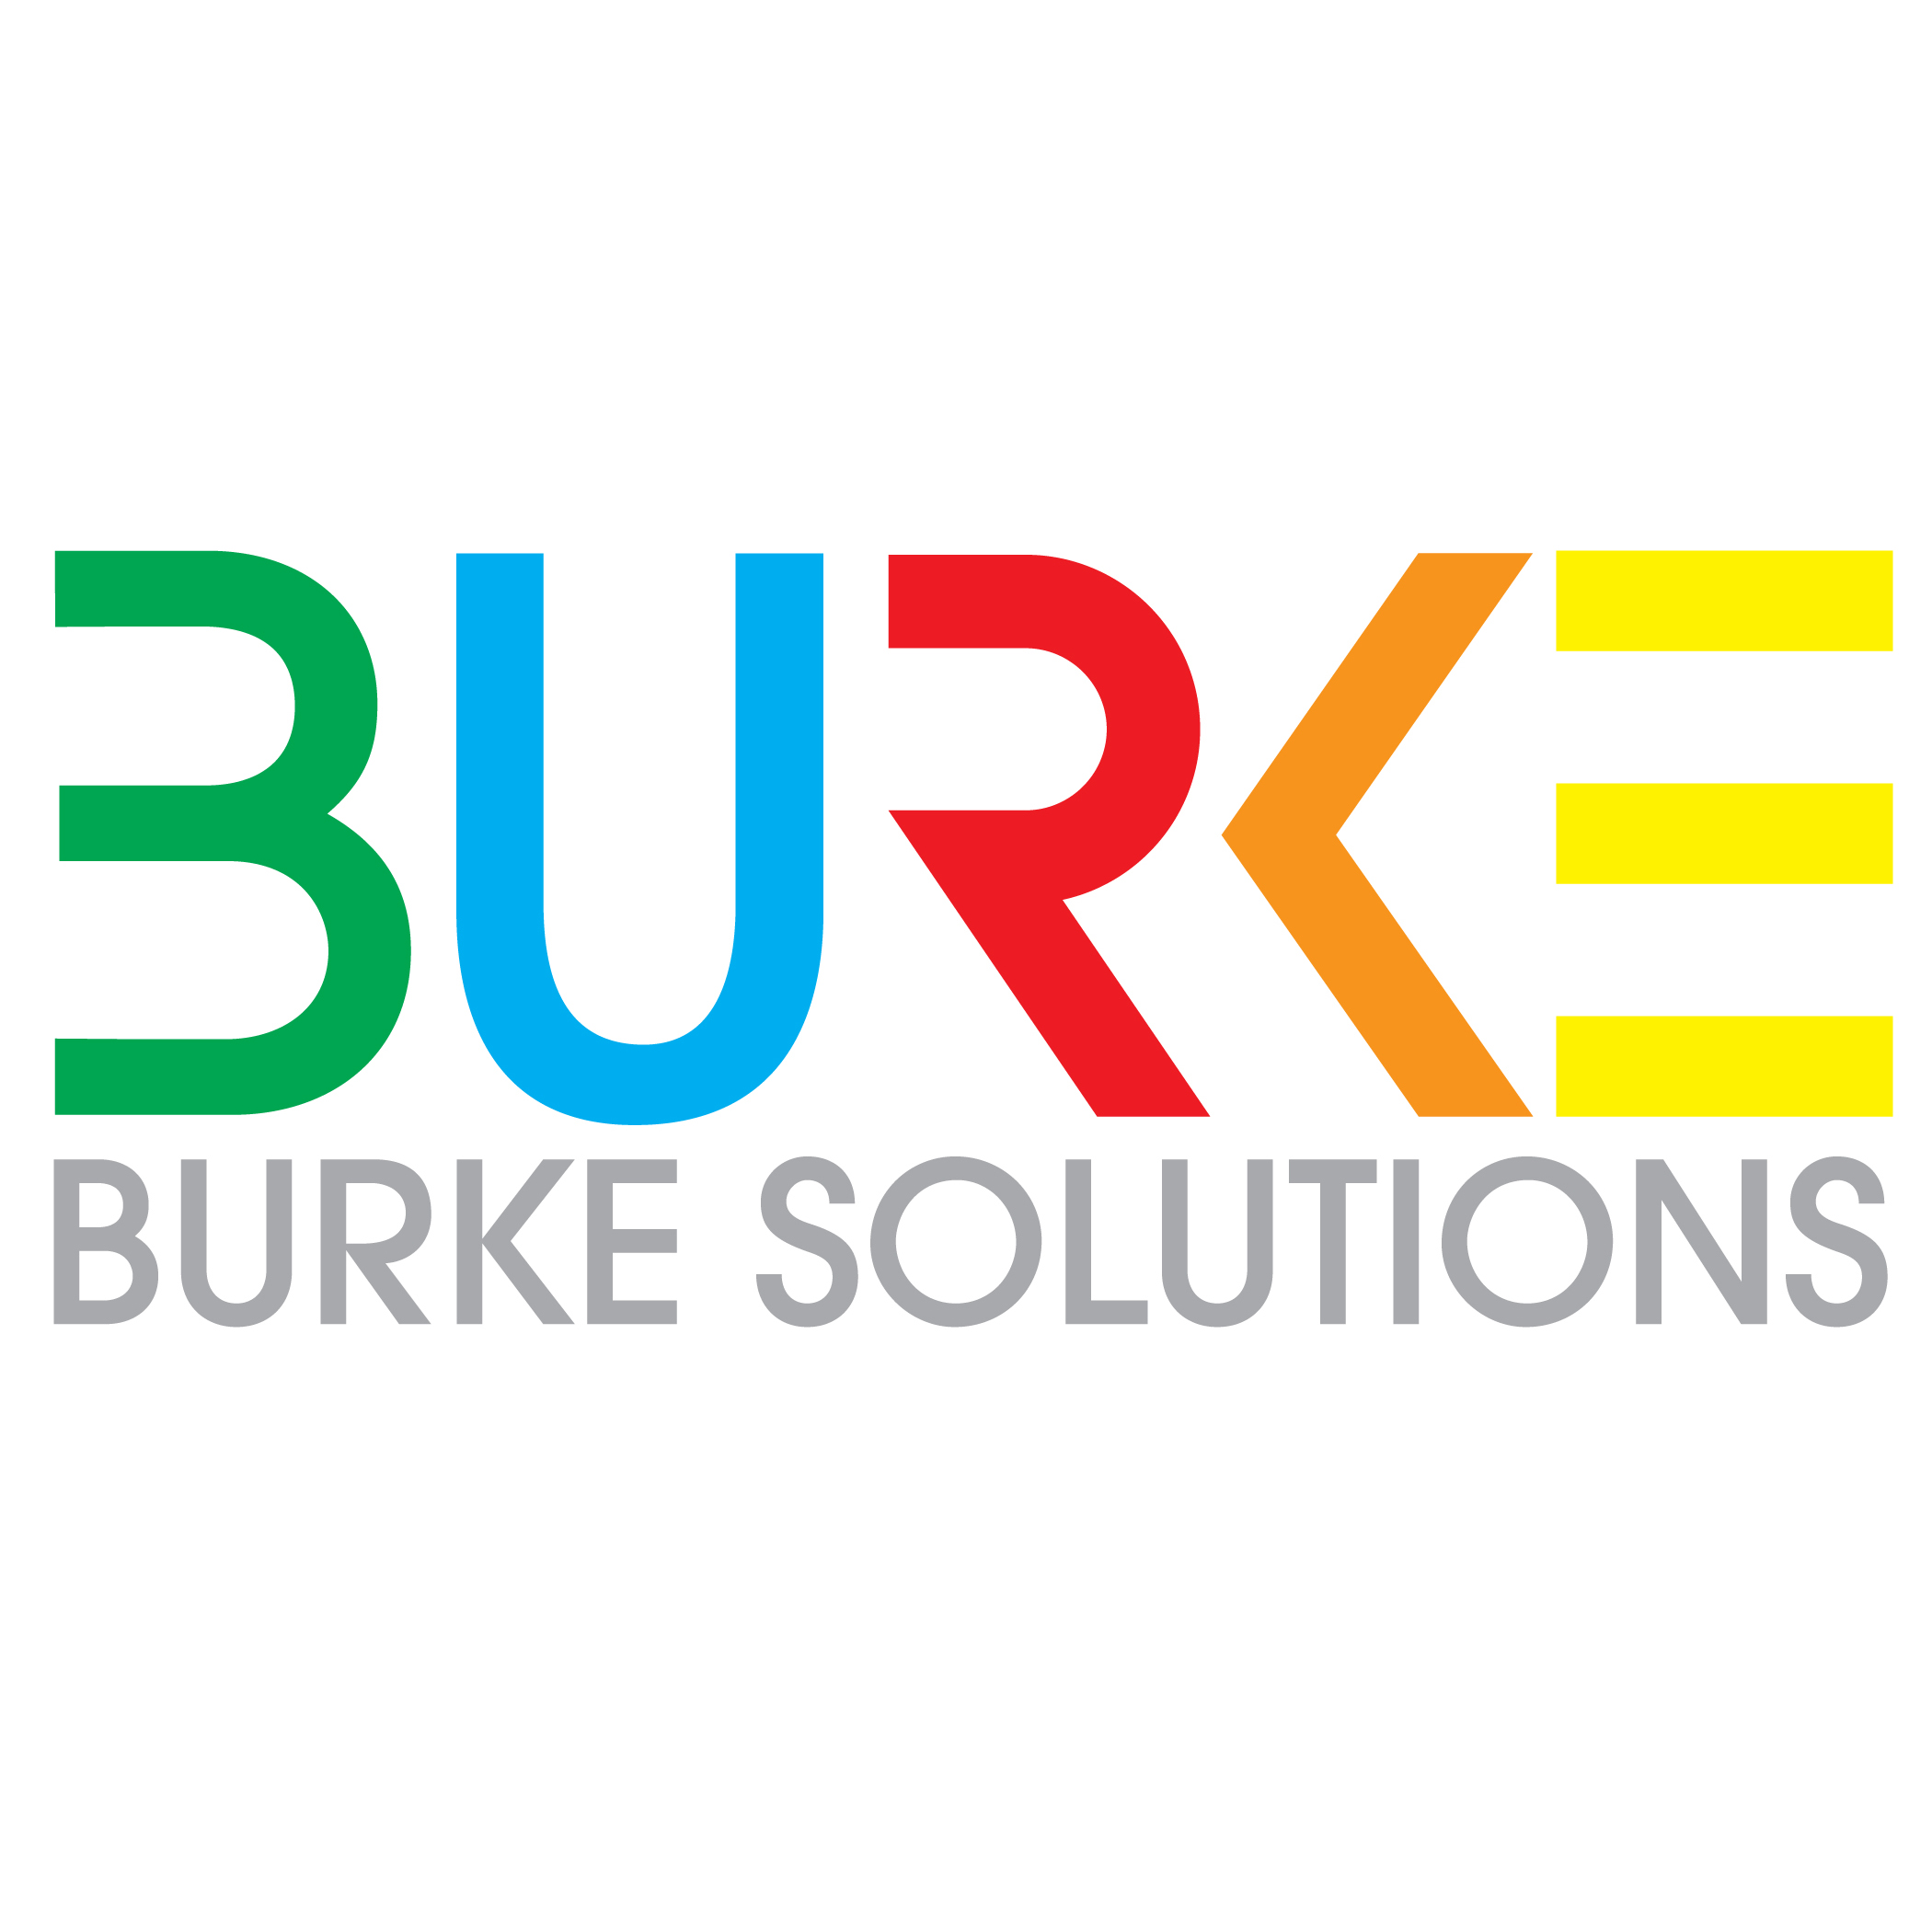 Burke Solutions